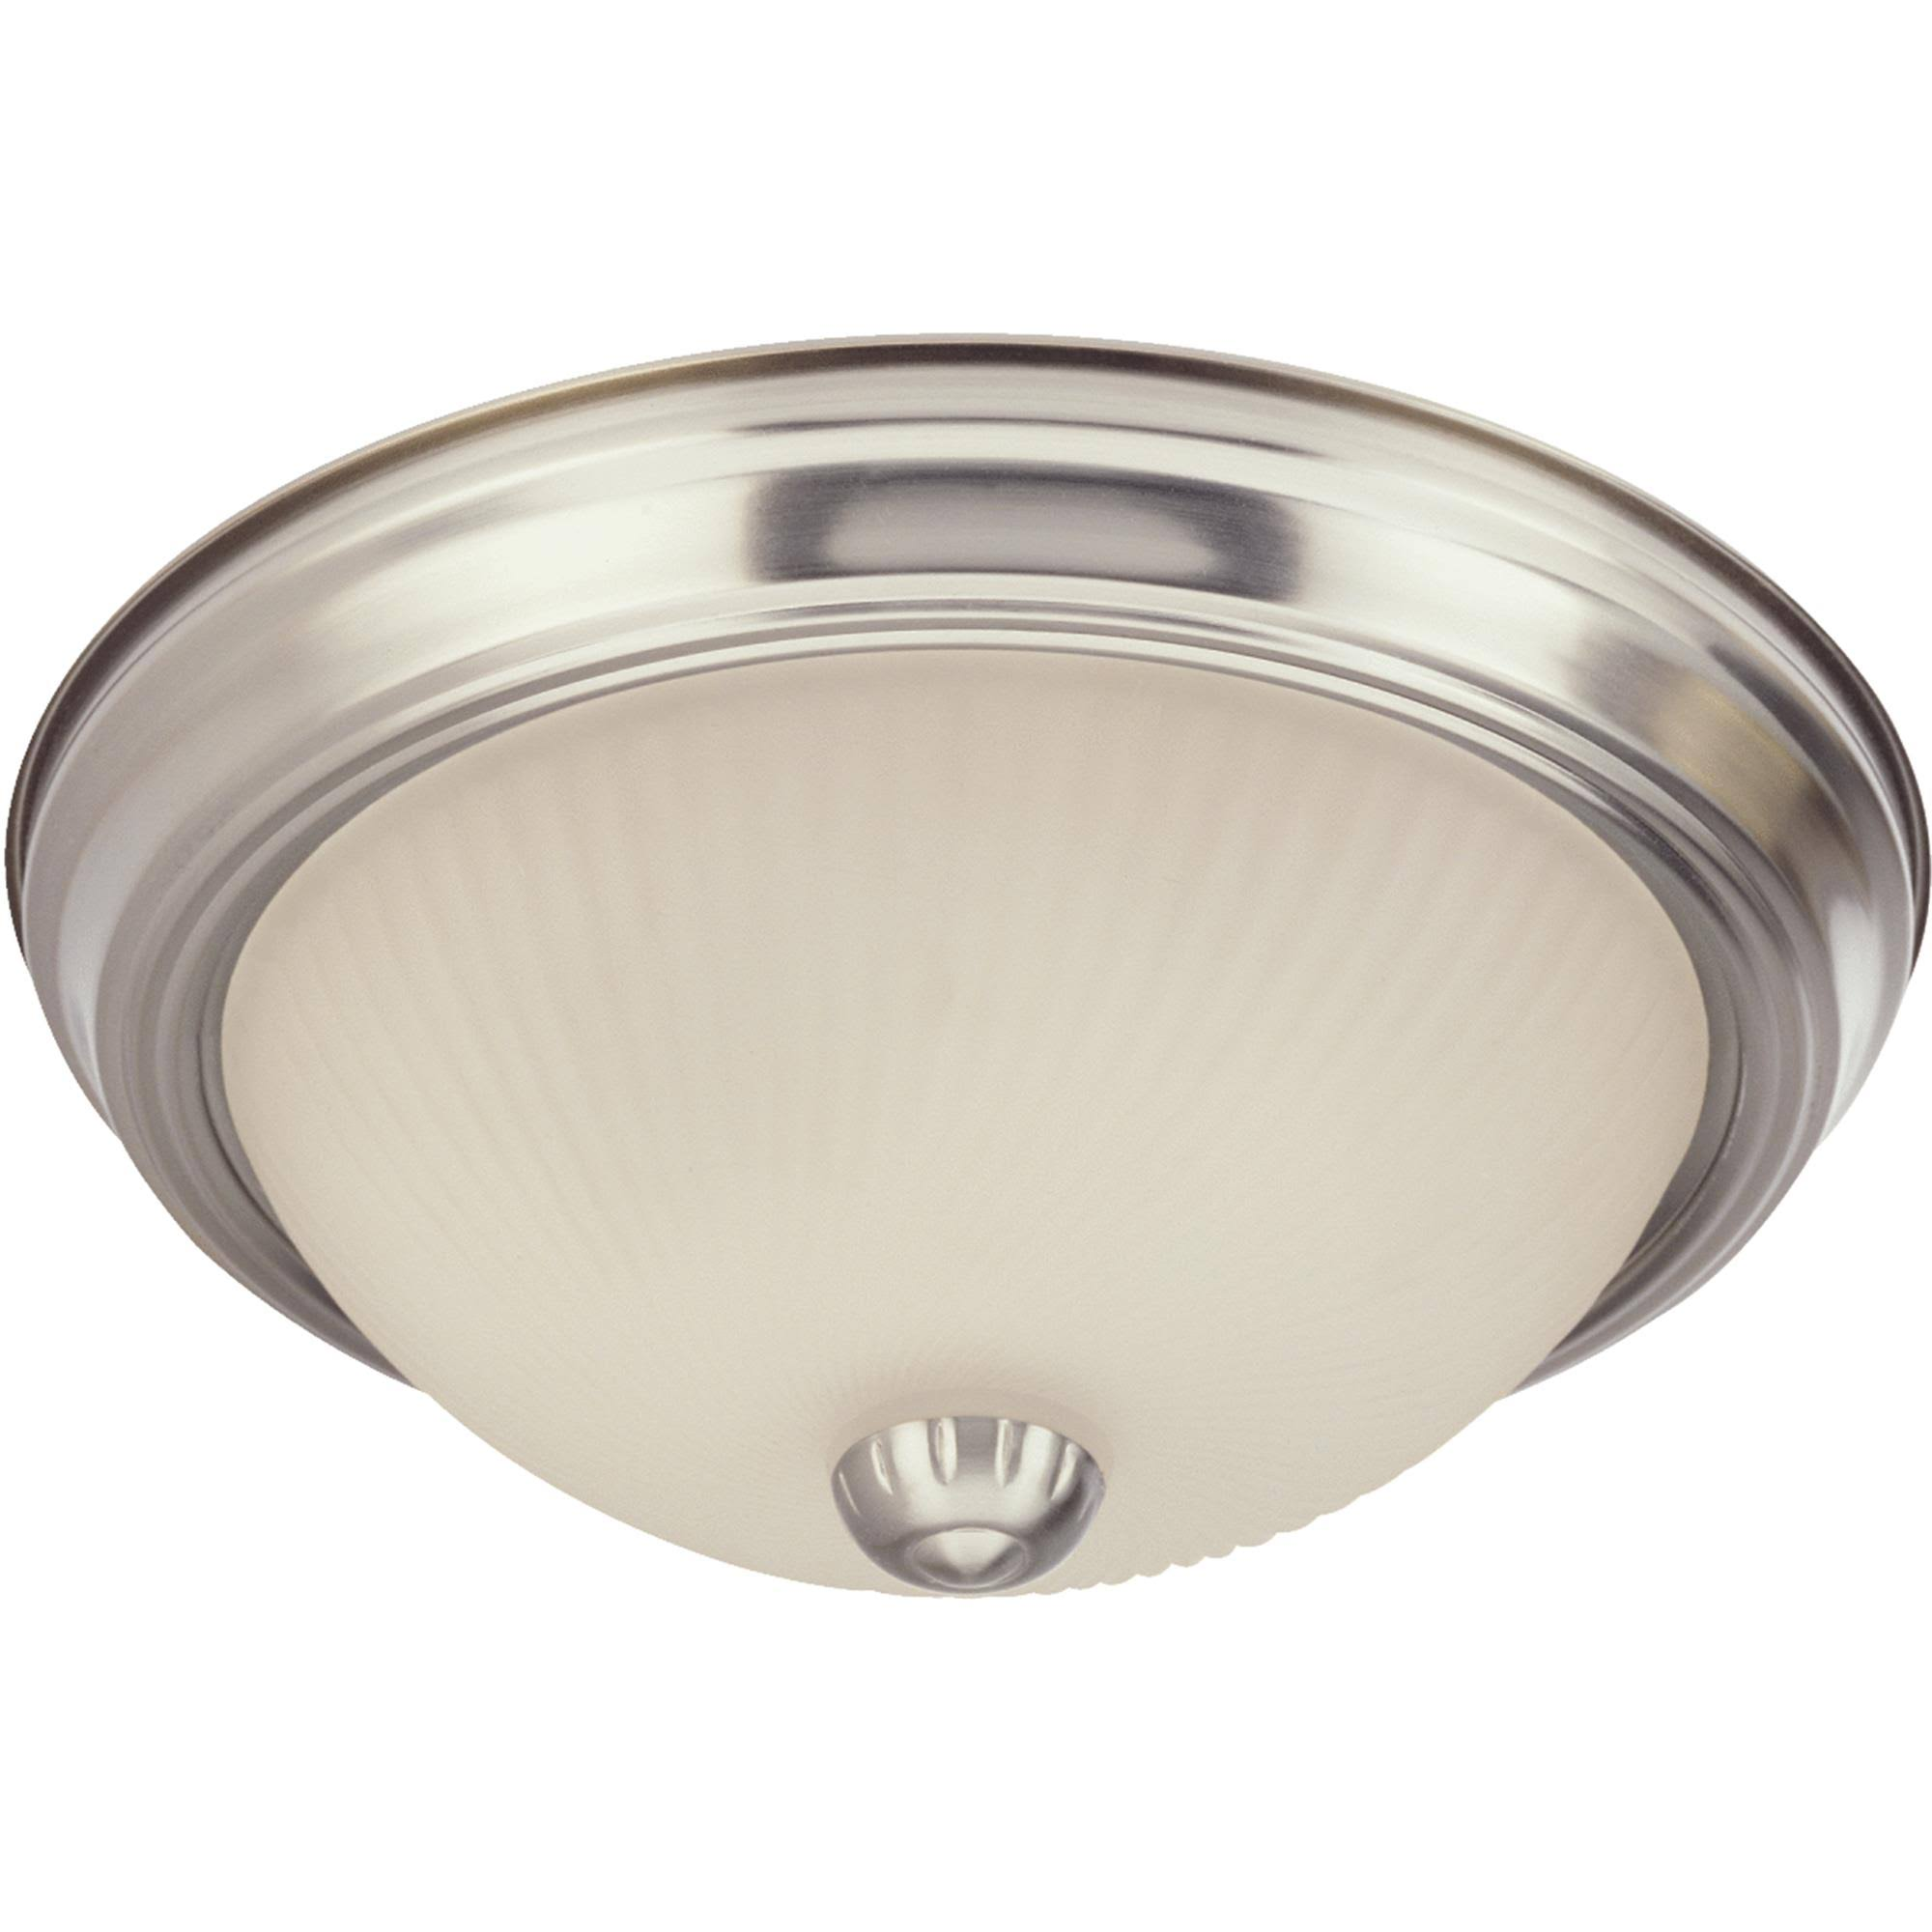 Westinghouse Flush Mount Ceiling Fixture - Nickel, 11''